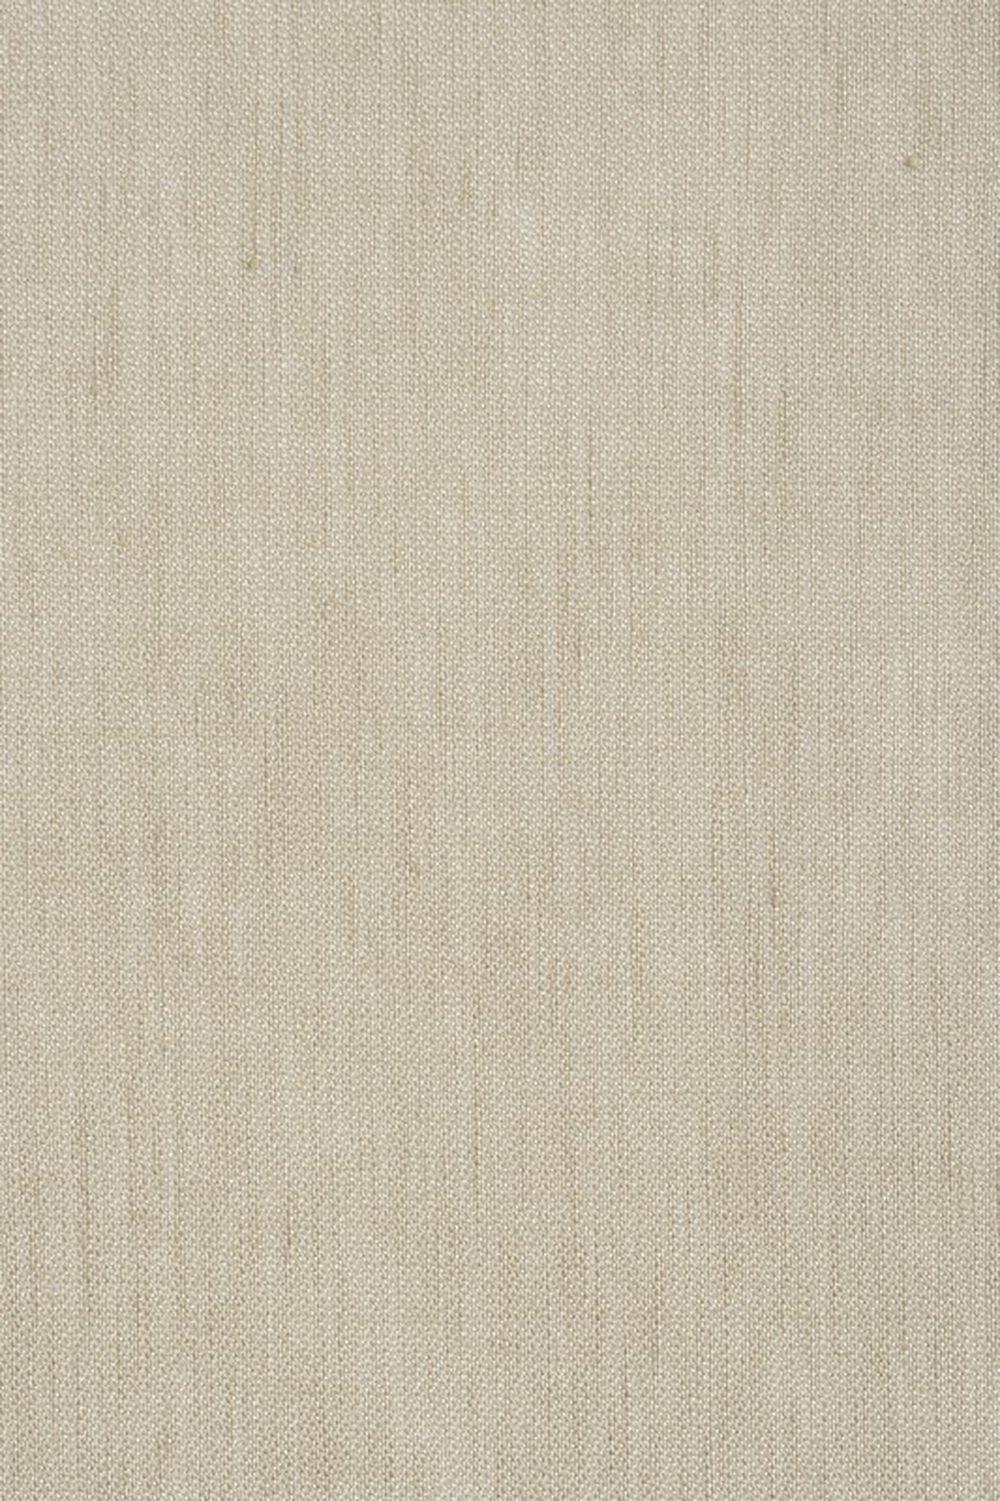 Photo of the fabric Balance* Linen swatch by James Dunlop. Use for Drapery, Accessory. Style of Plain